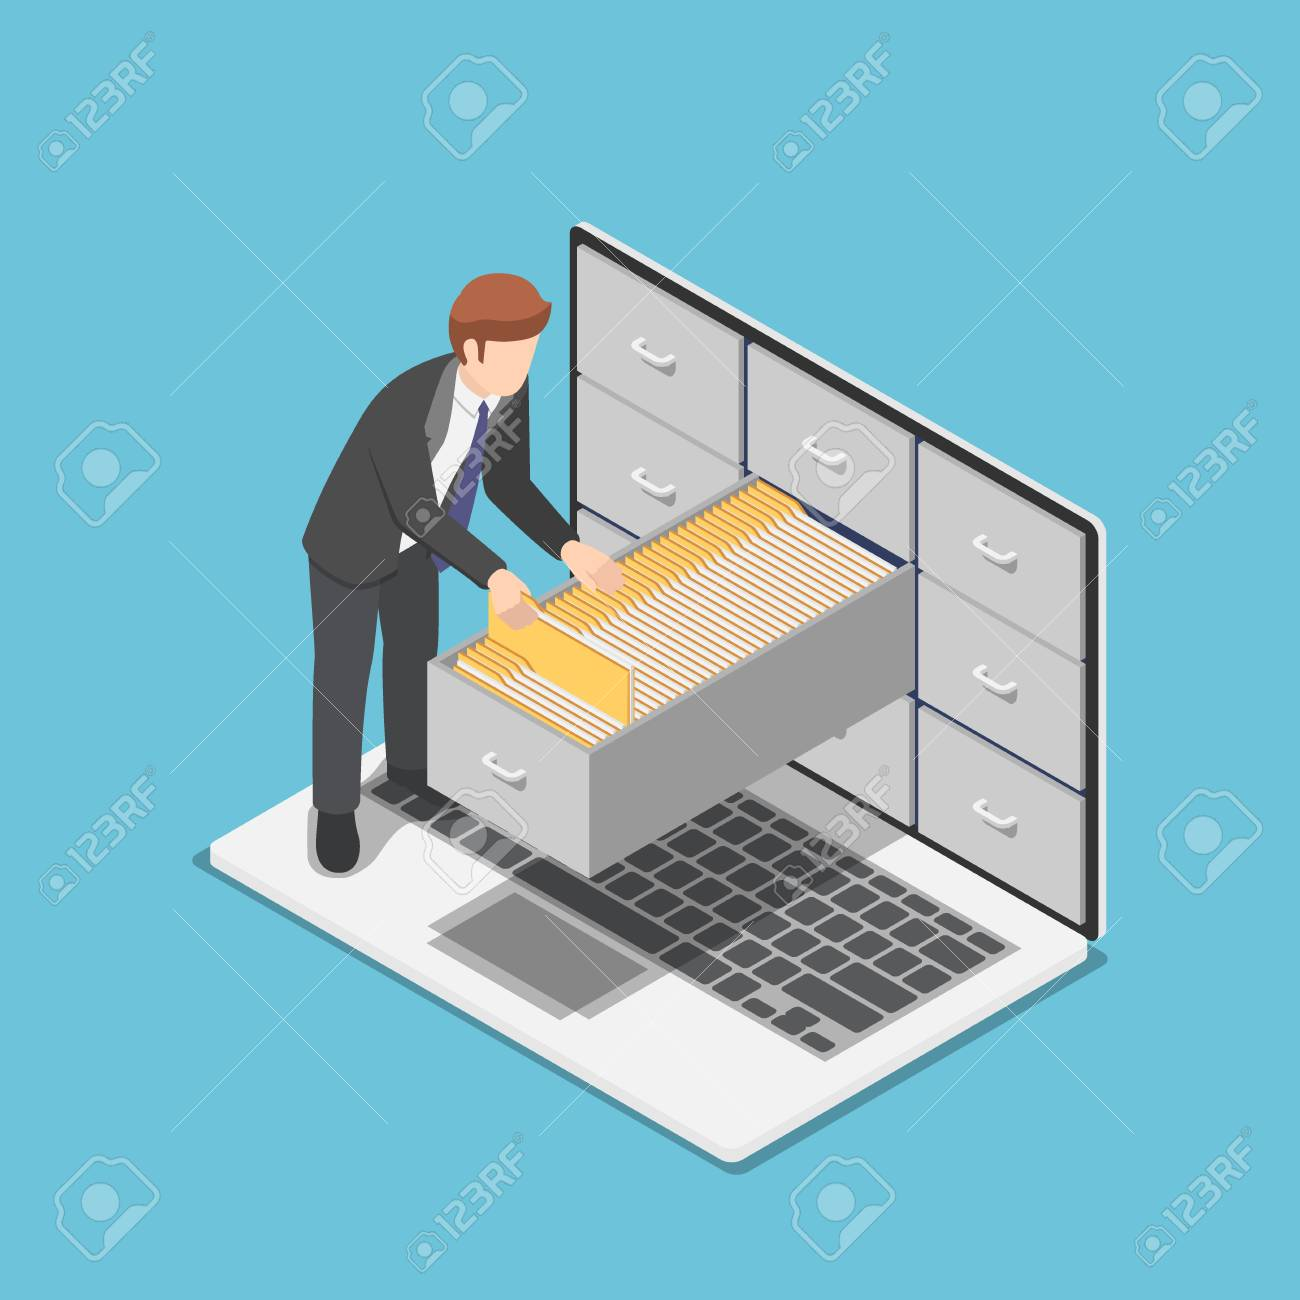 Flat 3d isometric businessman manage document folders in cabinet inside the laptop screen. File and data management concept. - 125411620